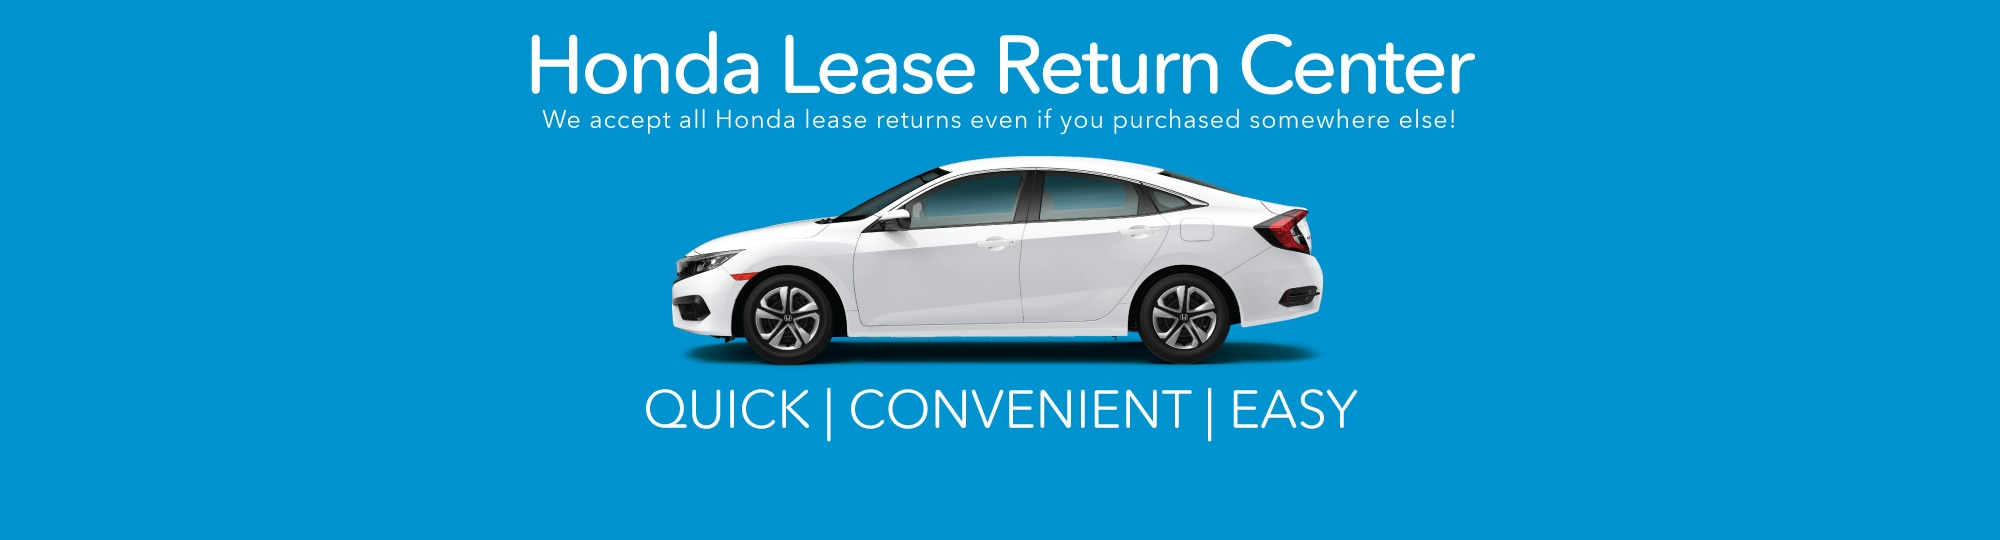 grappone specials new civic lx honda manchester lease